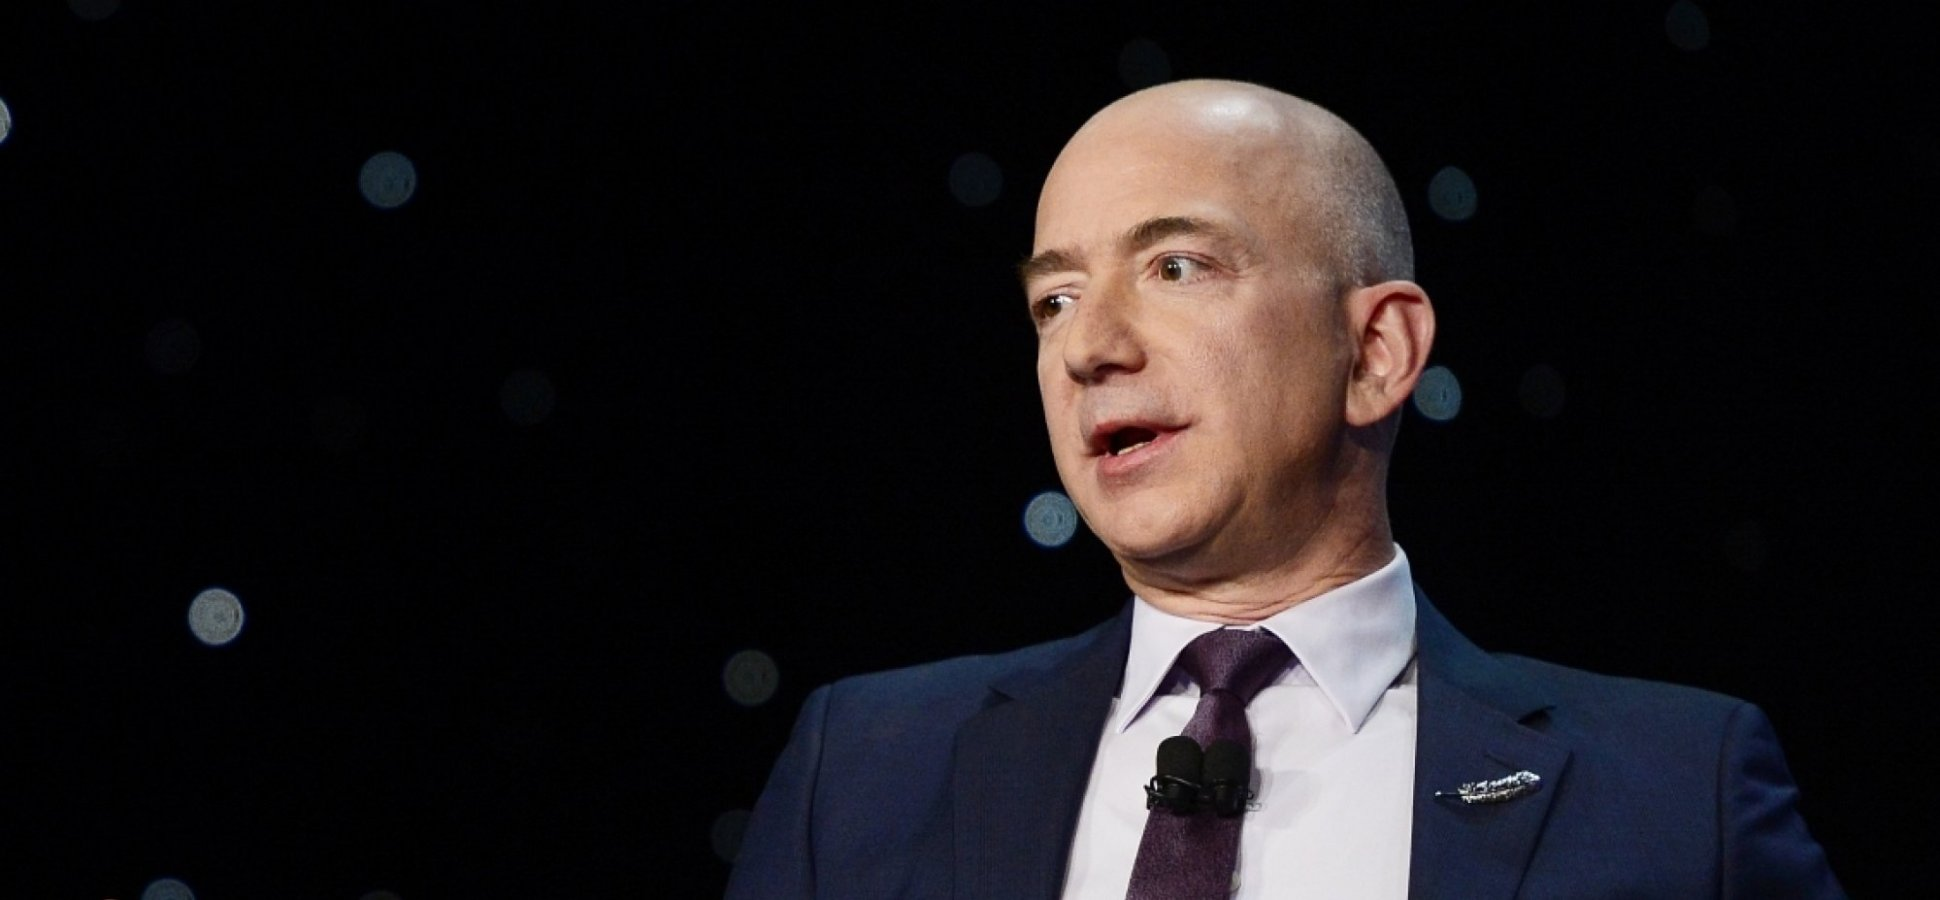 Jeff Bezos: Ask Yourself 1 Question to Make Truly Important Decisions (and Avoid Lifelong Regrets)